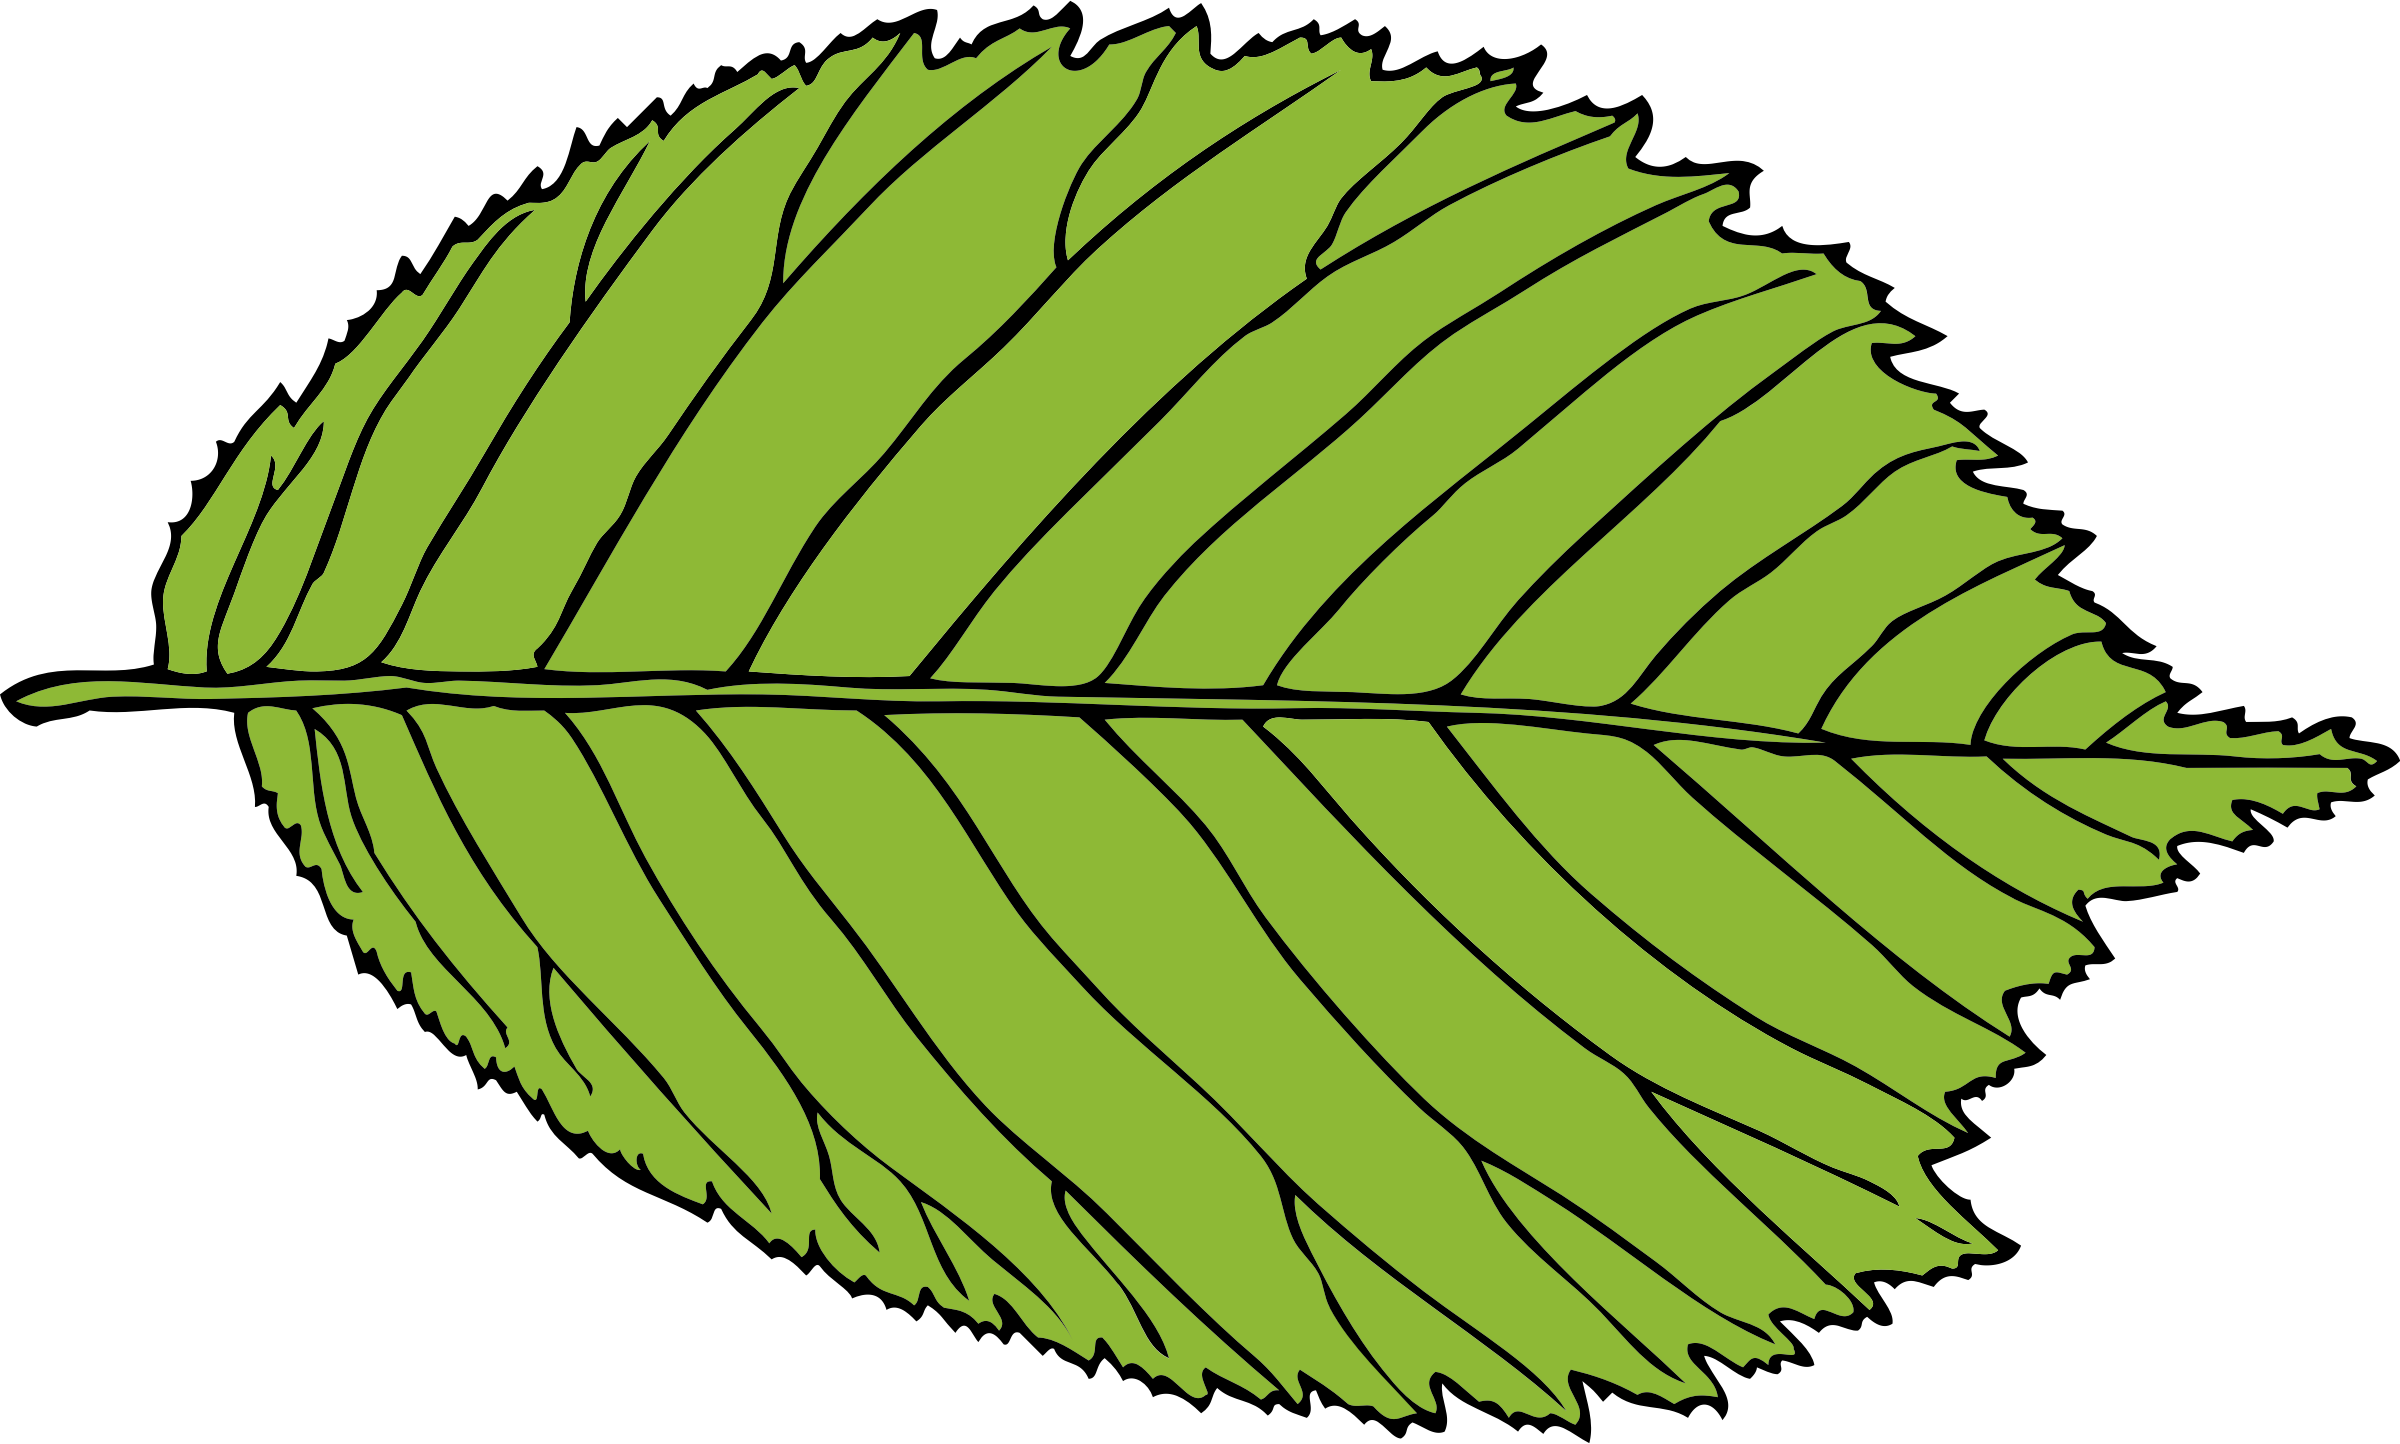 bi-serrate leaf by johnny_automatic